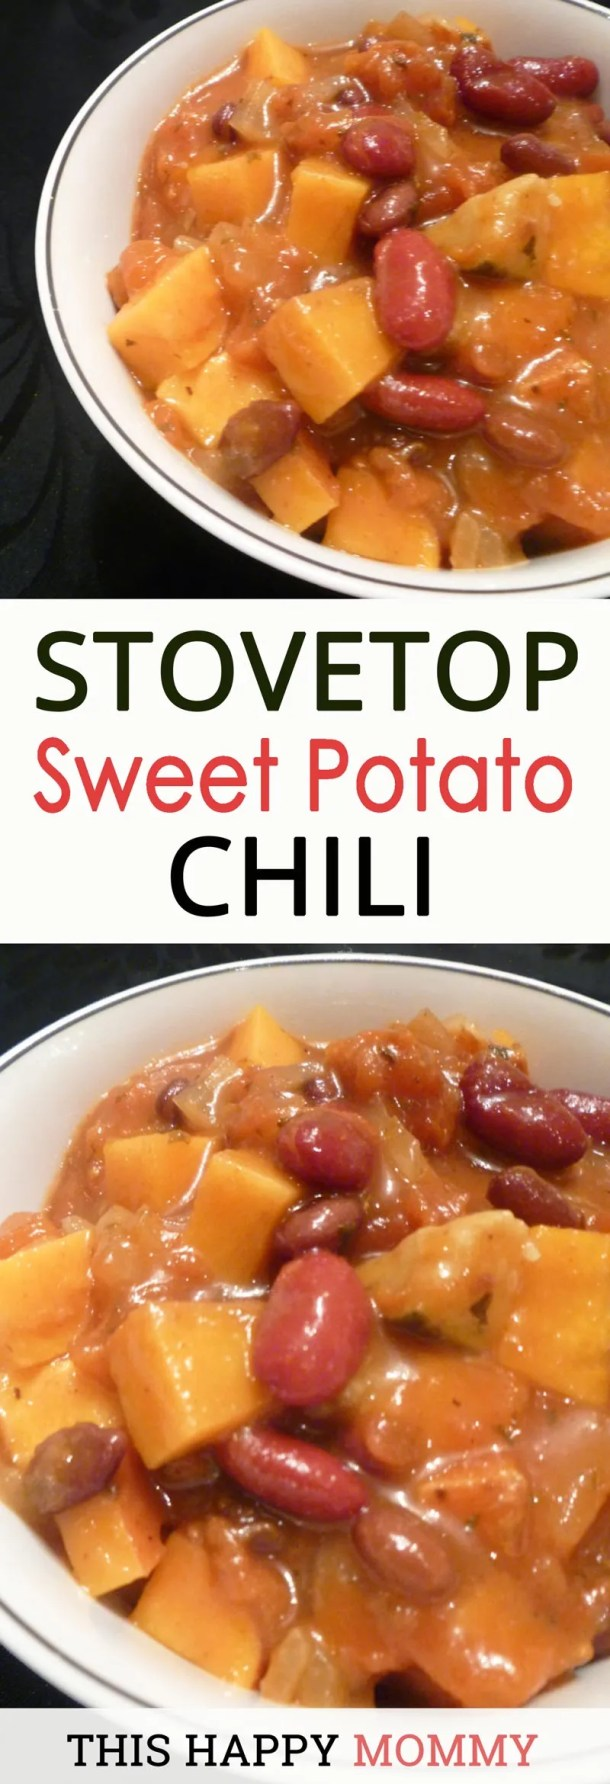 My family loves this chili! Sweet potatoes, beans, and a medley of vegetables in a rich tomato based sauce. Stovetop Sweet Potato Chili is the perfect warm-up dish for a cold night. high protein healthy eating vegetarian recipes | easy vegetarian recipes for kids | low fat vegan recipes | low carb vegetarian meals for weight loss | meatless monday | vegetarian recipes | healthy and easy family vegetarian meals | #recipes #vegetarian #chili #winterfood #fallfood | thishappymommy.com